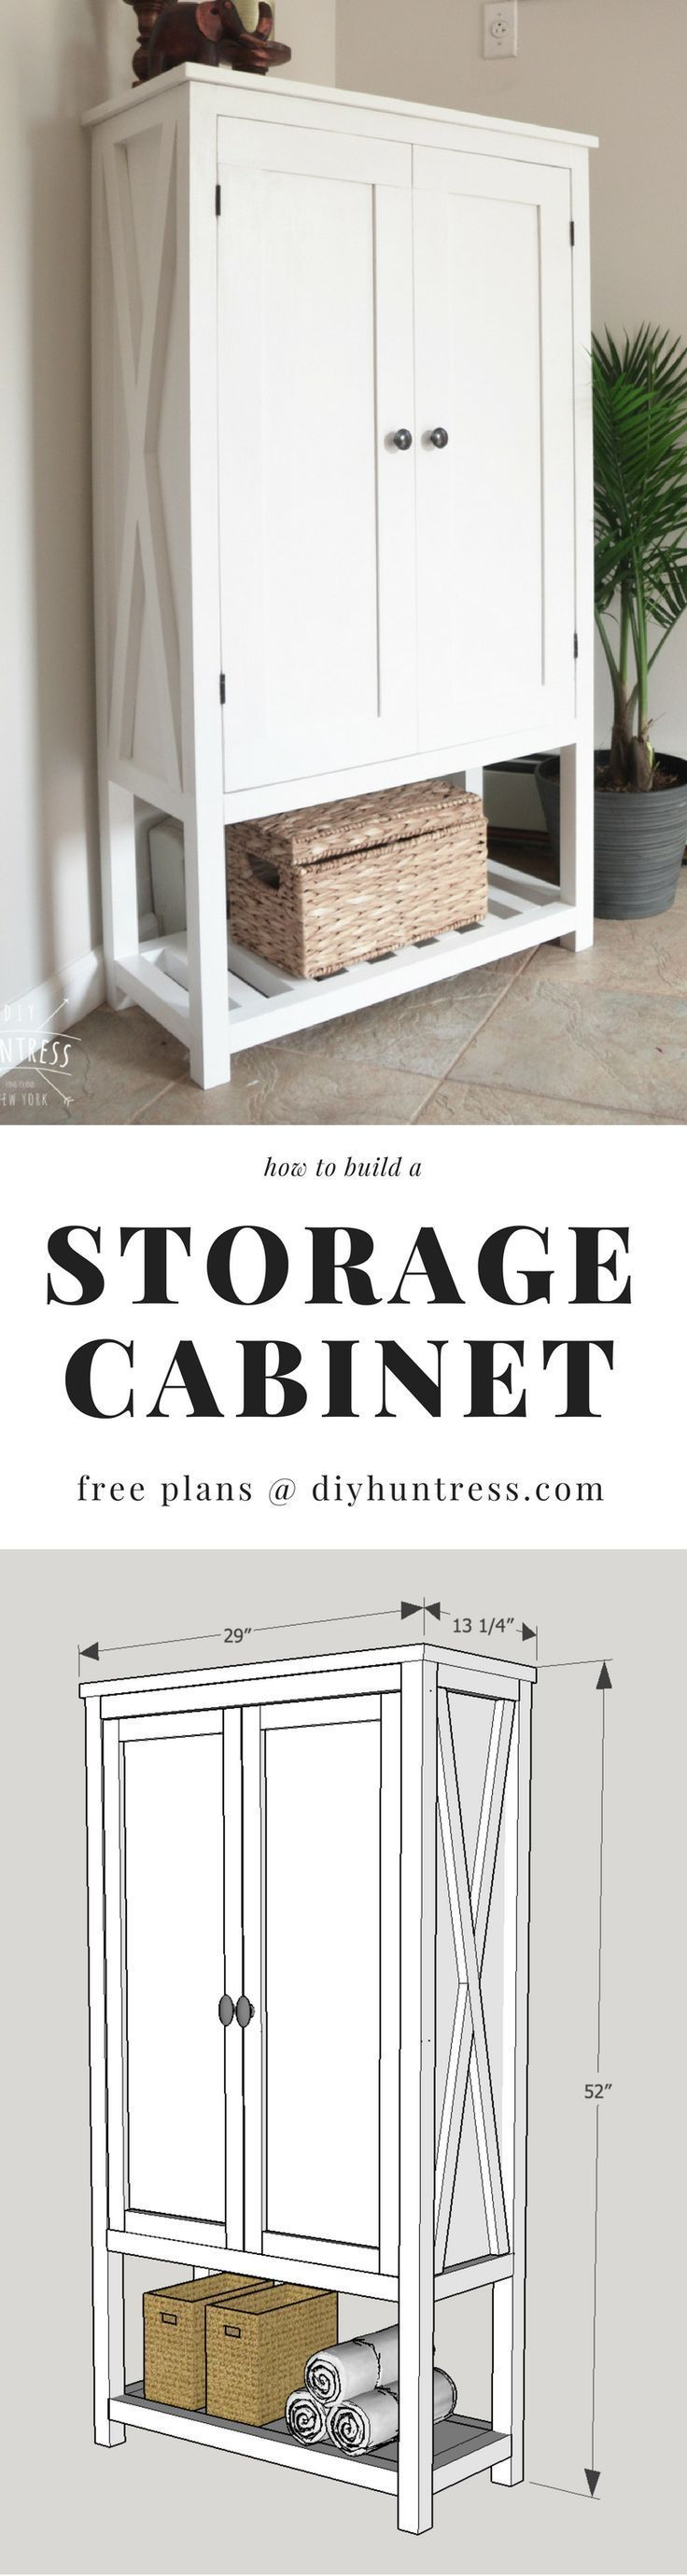 113 best Cabinets images on Pinterest